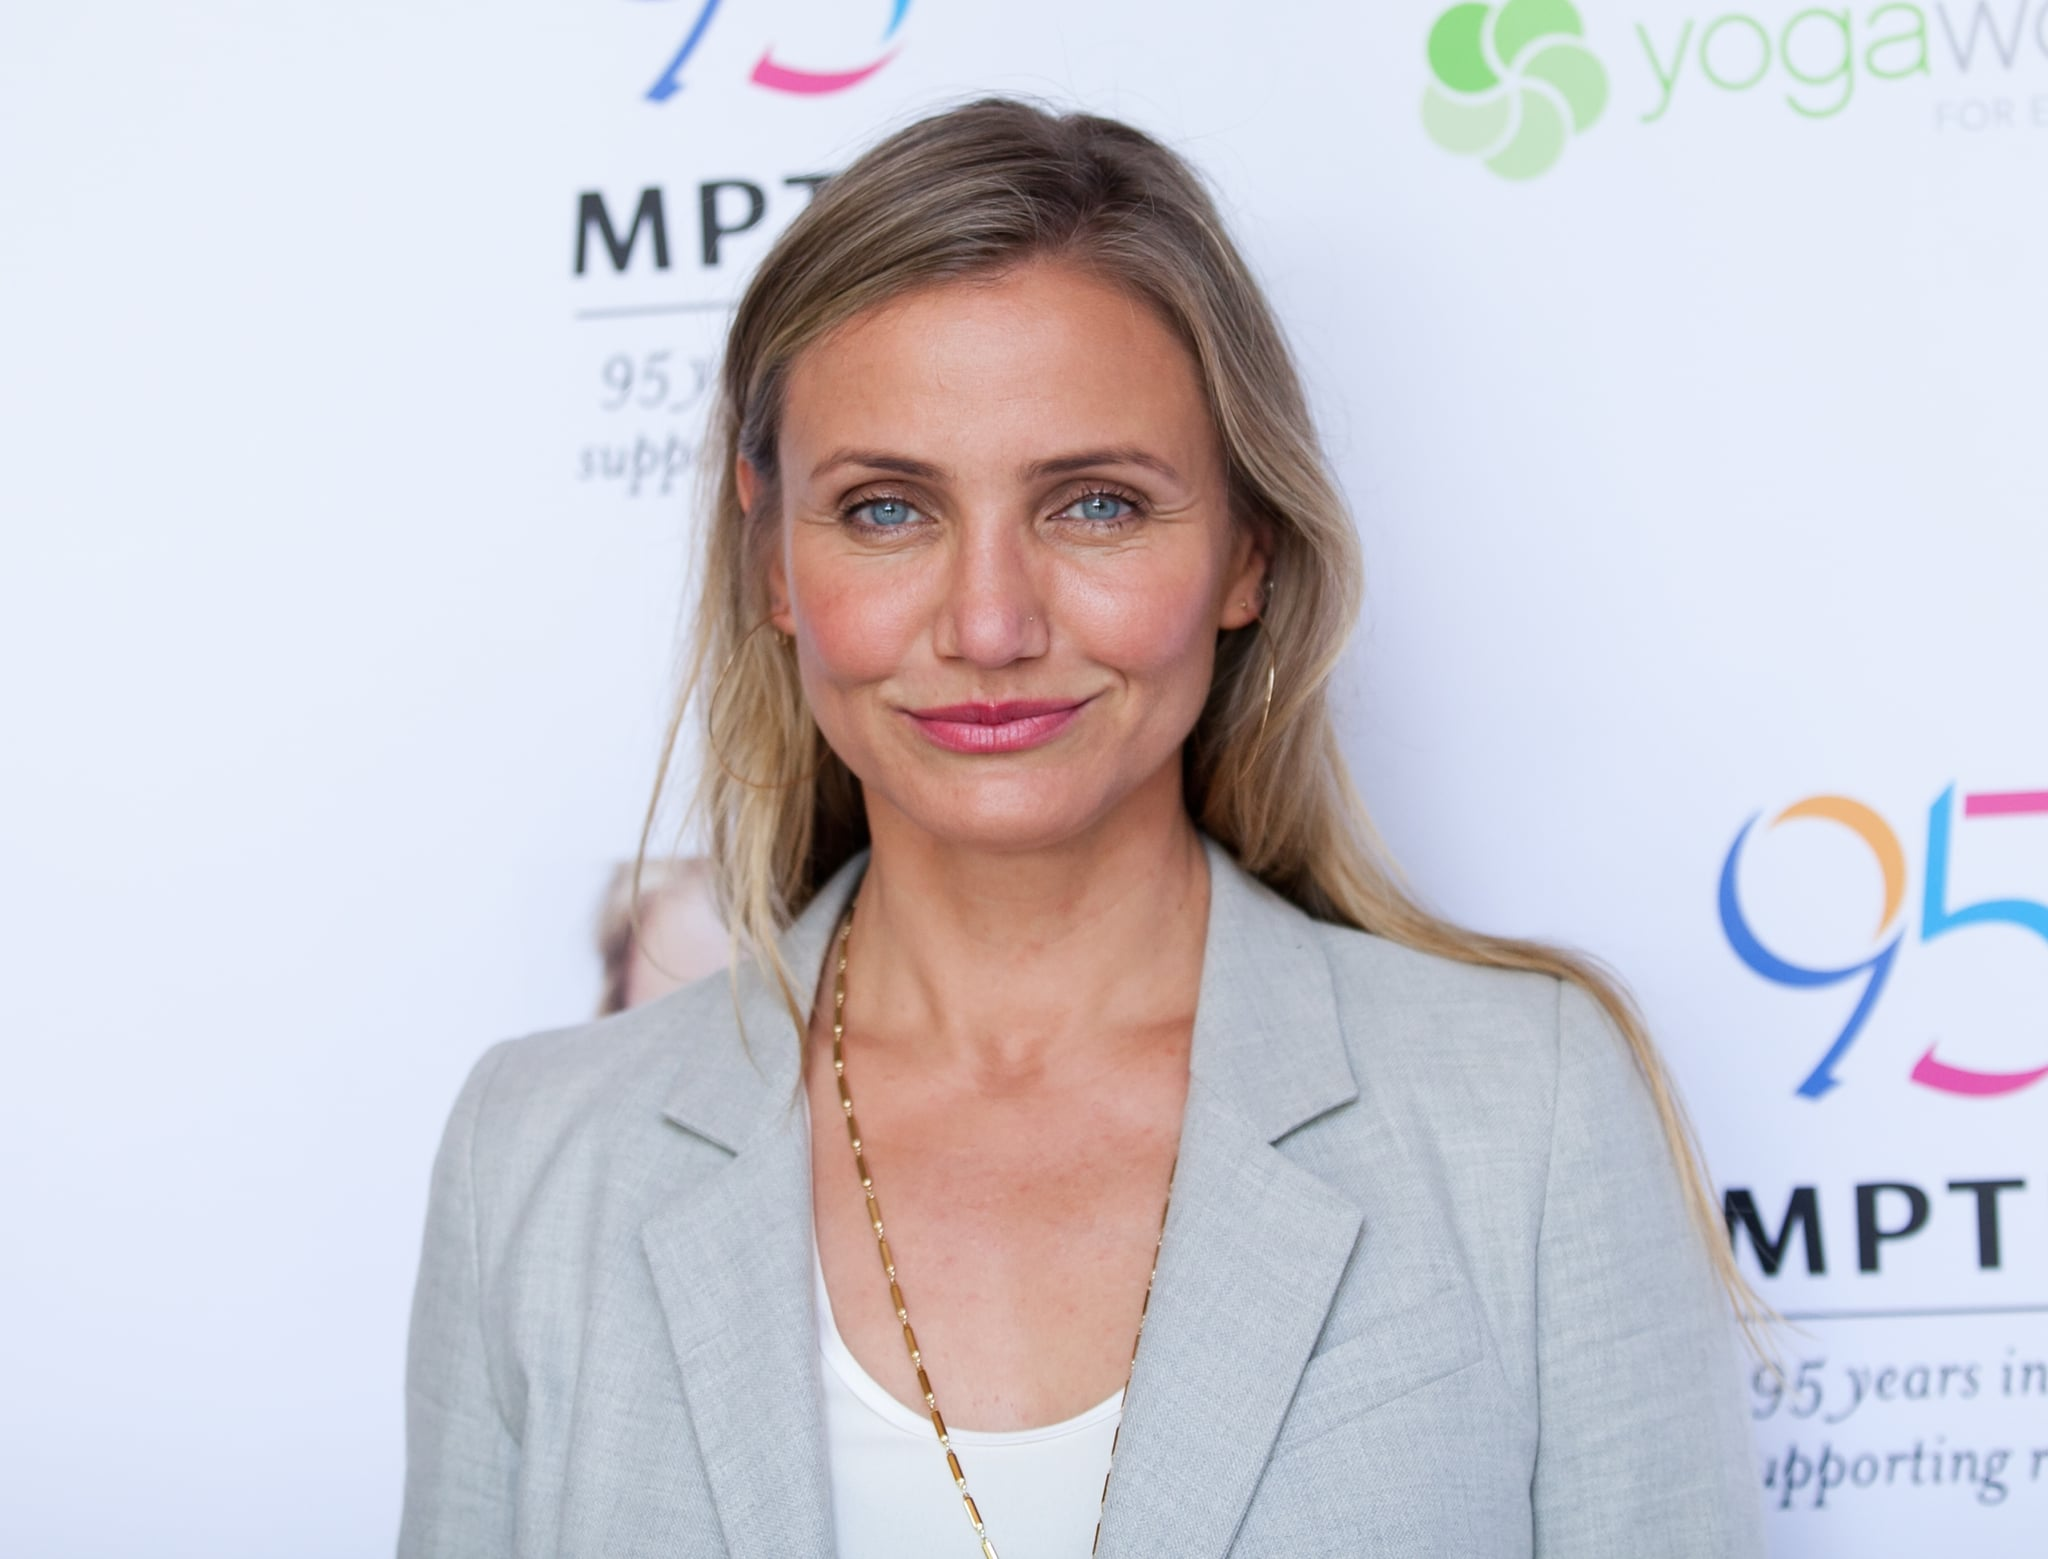 WOODLAND HILLS, CA - JUNE 10:  Cameron Diaz attends the MPTF Celebration for health and fitness at The Wasserman Campus on June 10, 2016 in Woodland Hills, California.  (Photo by Tibrina Hobson/Getty Images)